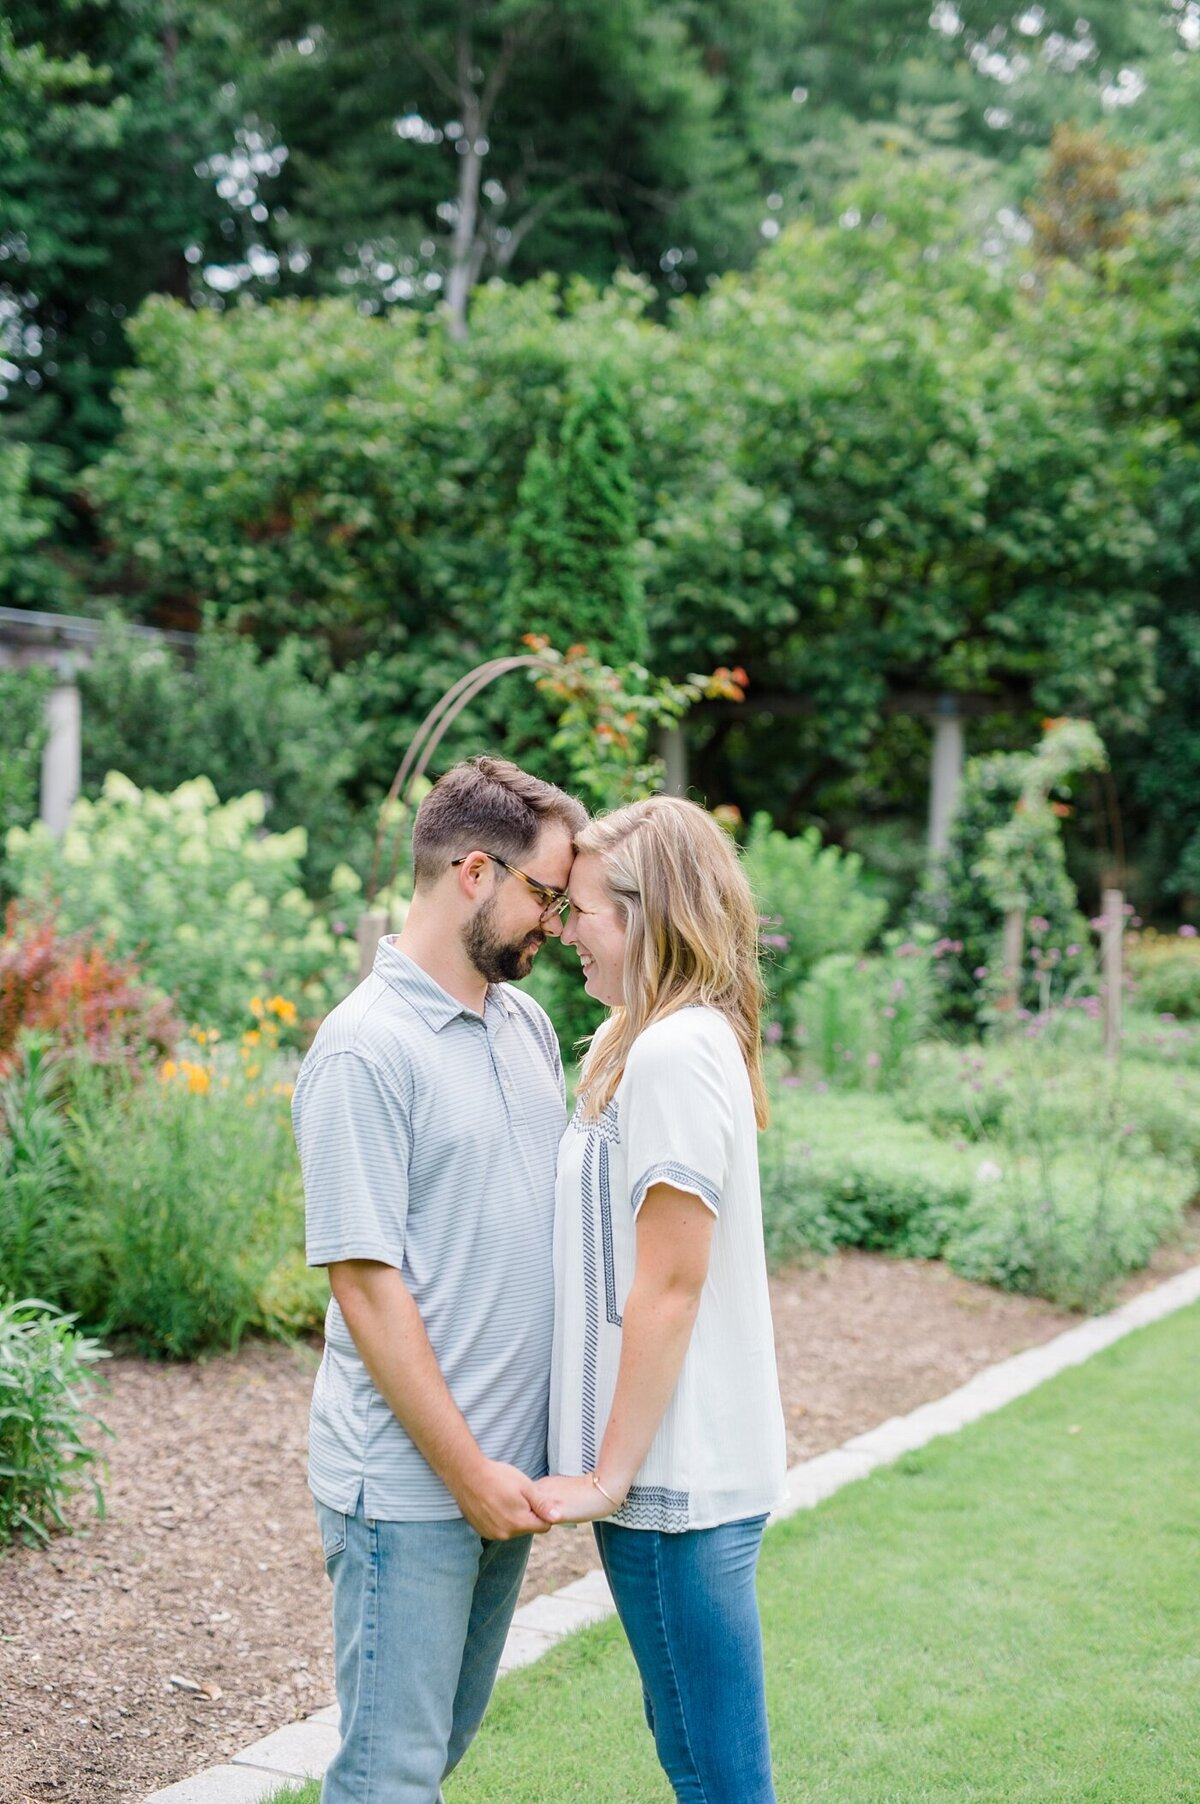 cator-woolford-gardens-engagement-wedding-photographer-laura-barnes-photo-shackelford-40